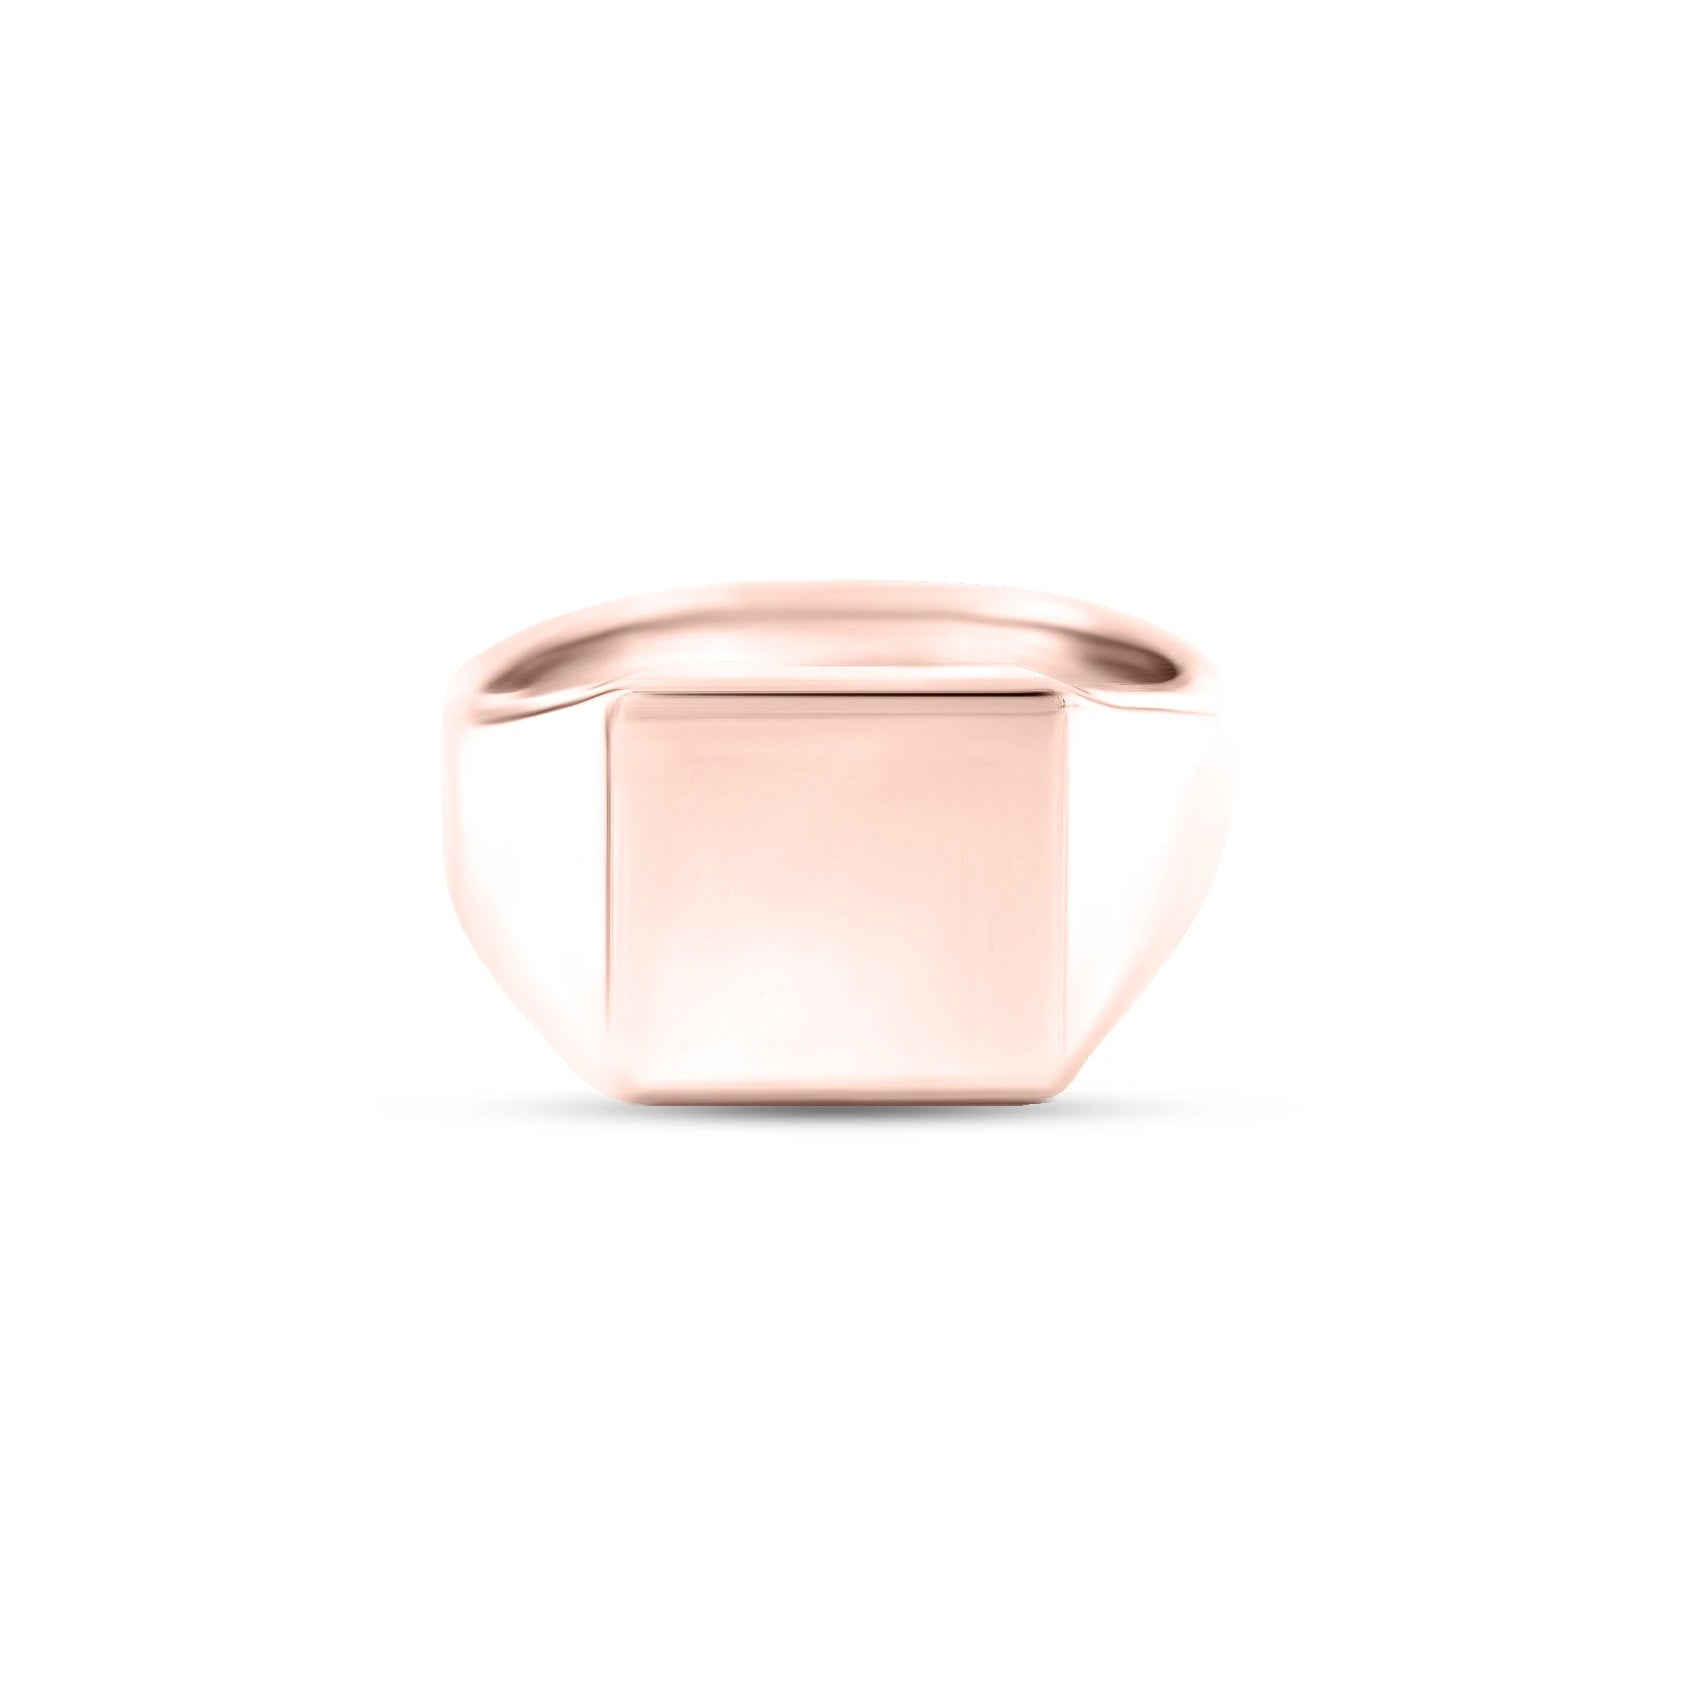 9ct Rose Gold 12 x 12mm Square Signet Ring